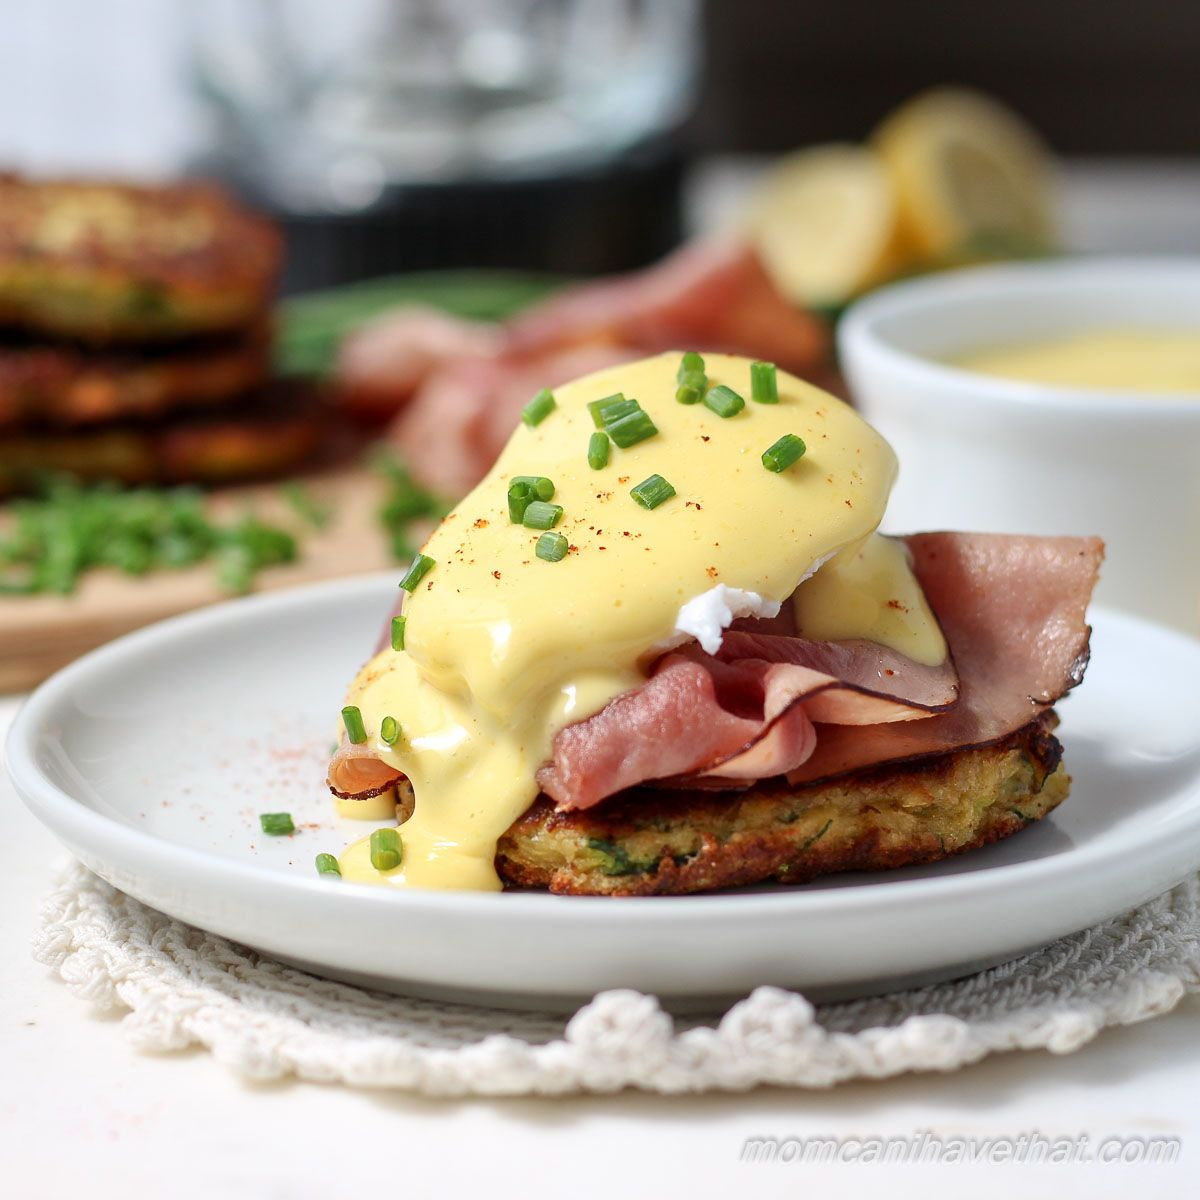 Low Carb Zucchini Fritter Eggs Benedict With Prosciutto And Tomato